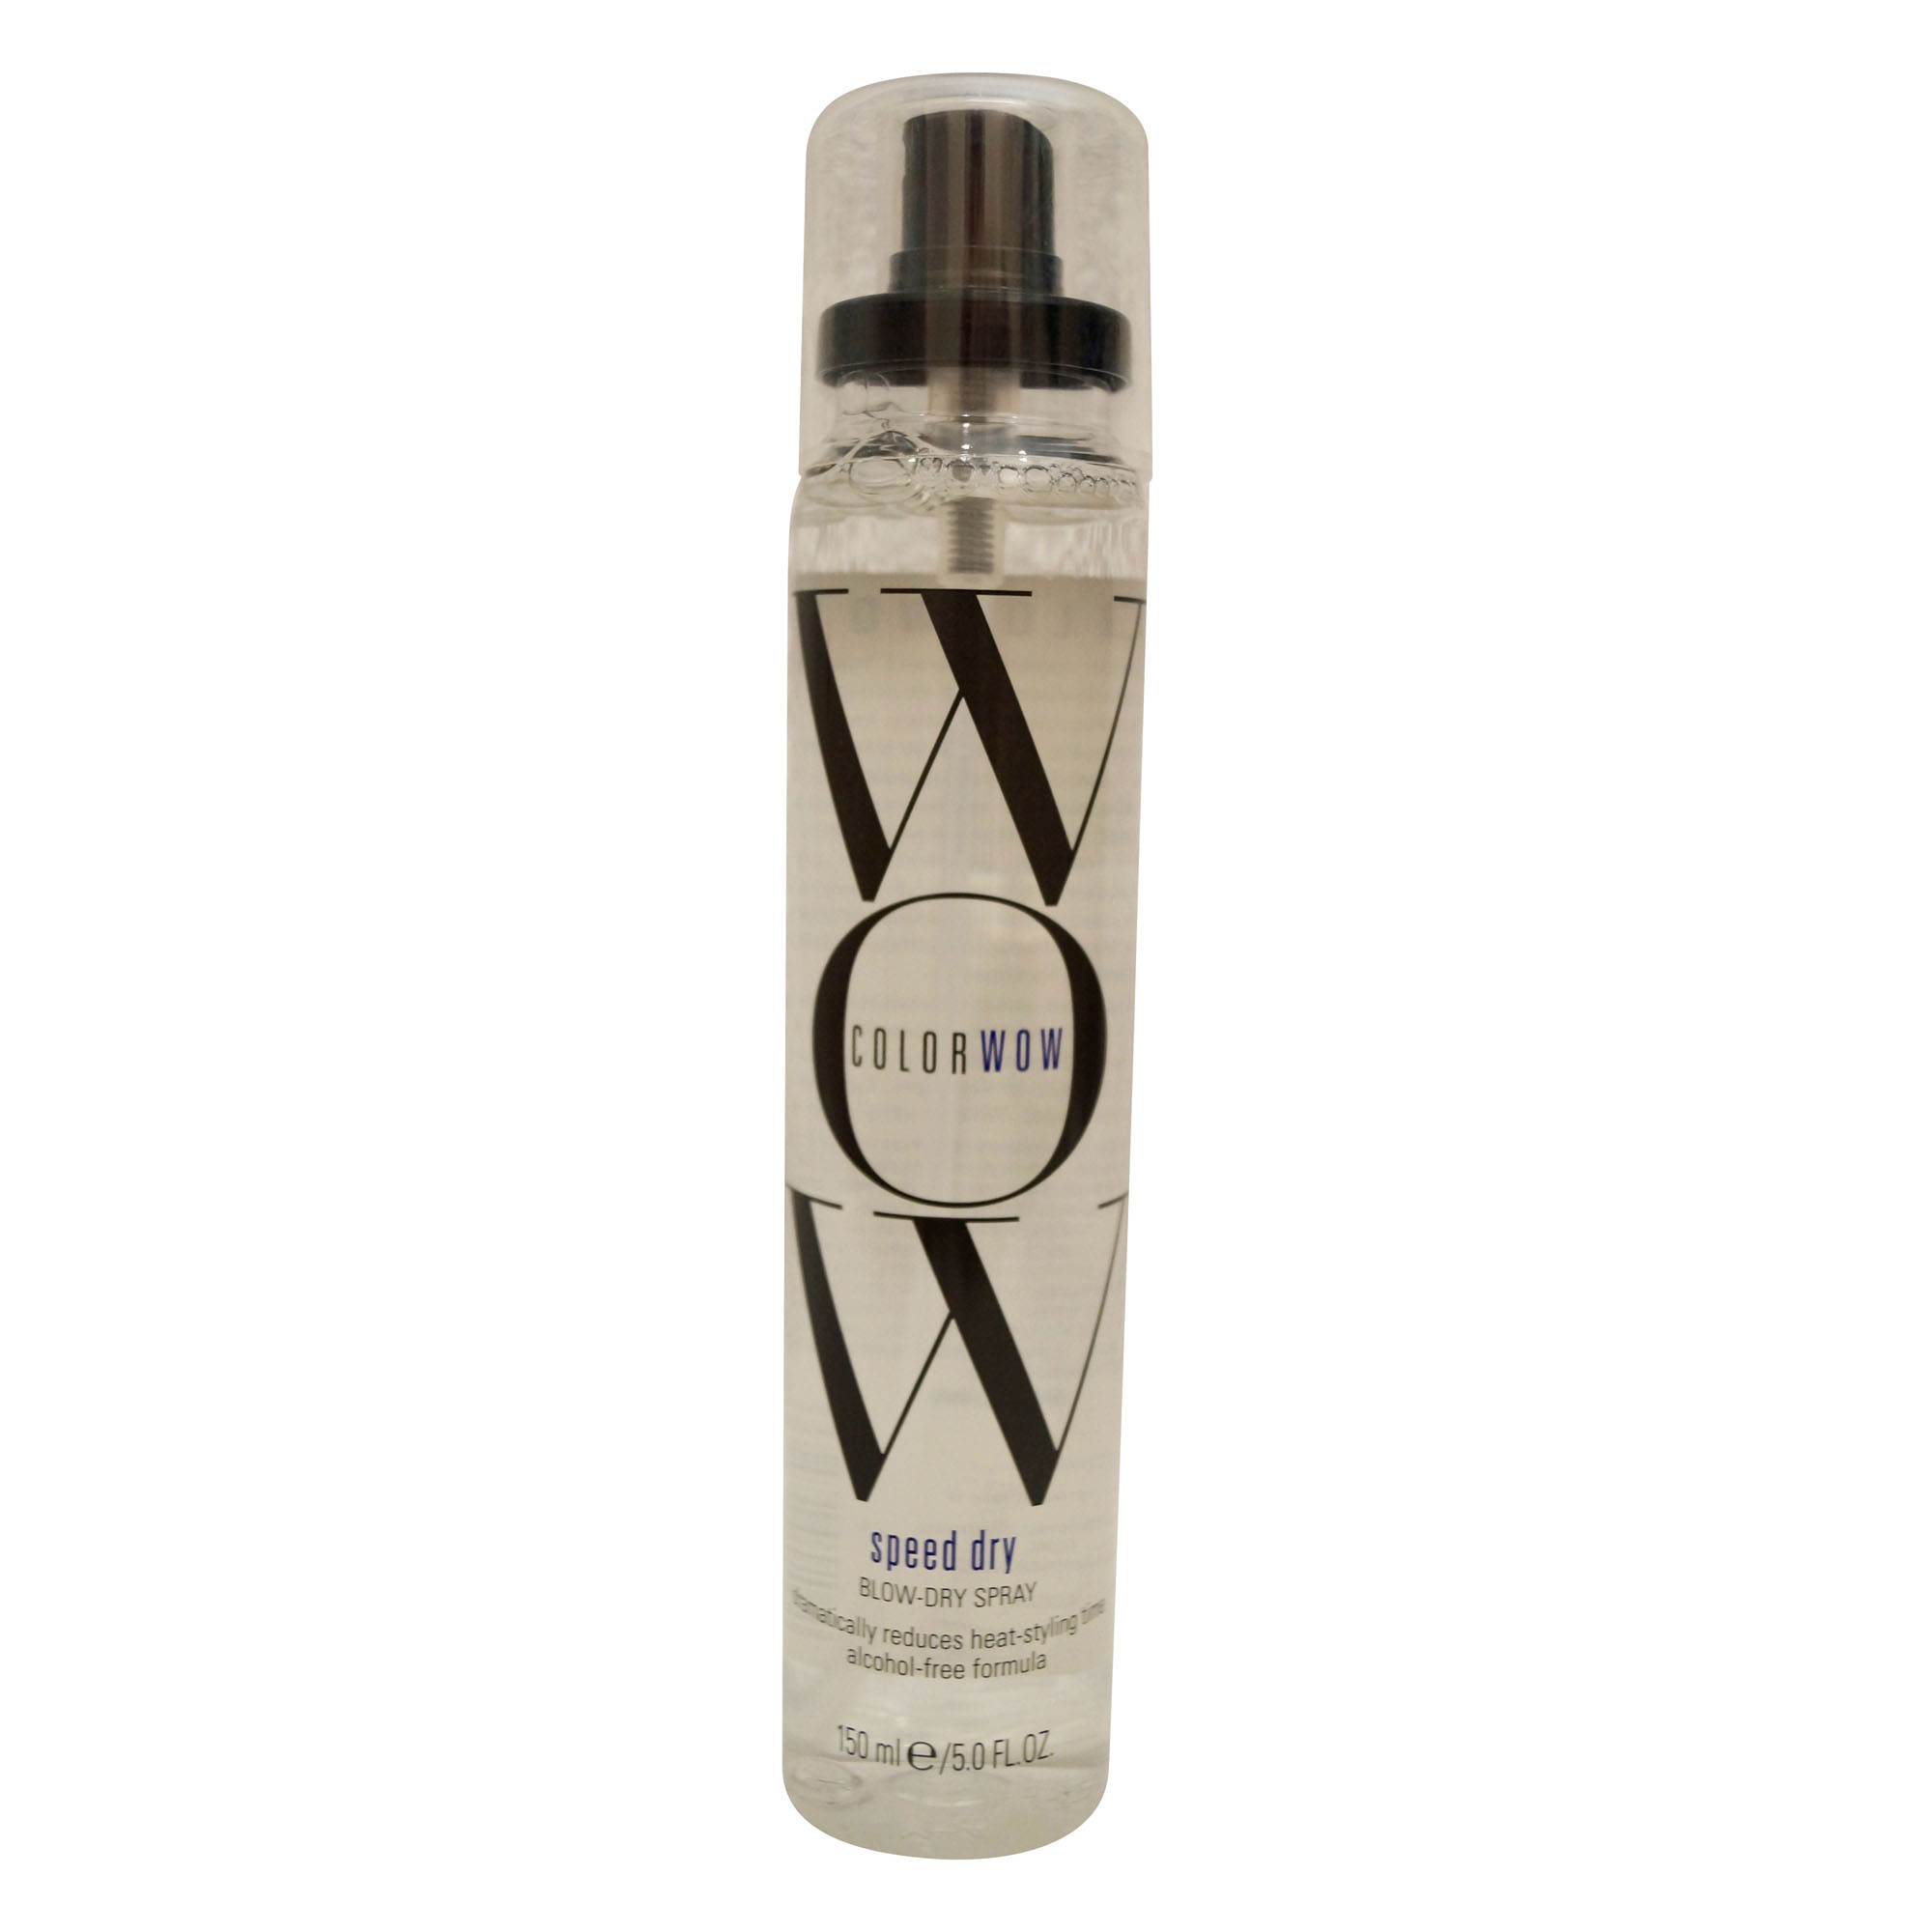 Color Wow Speed Dry Blow Dry Spray 5 Oz